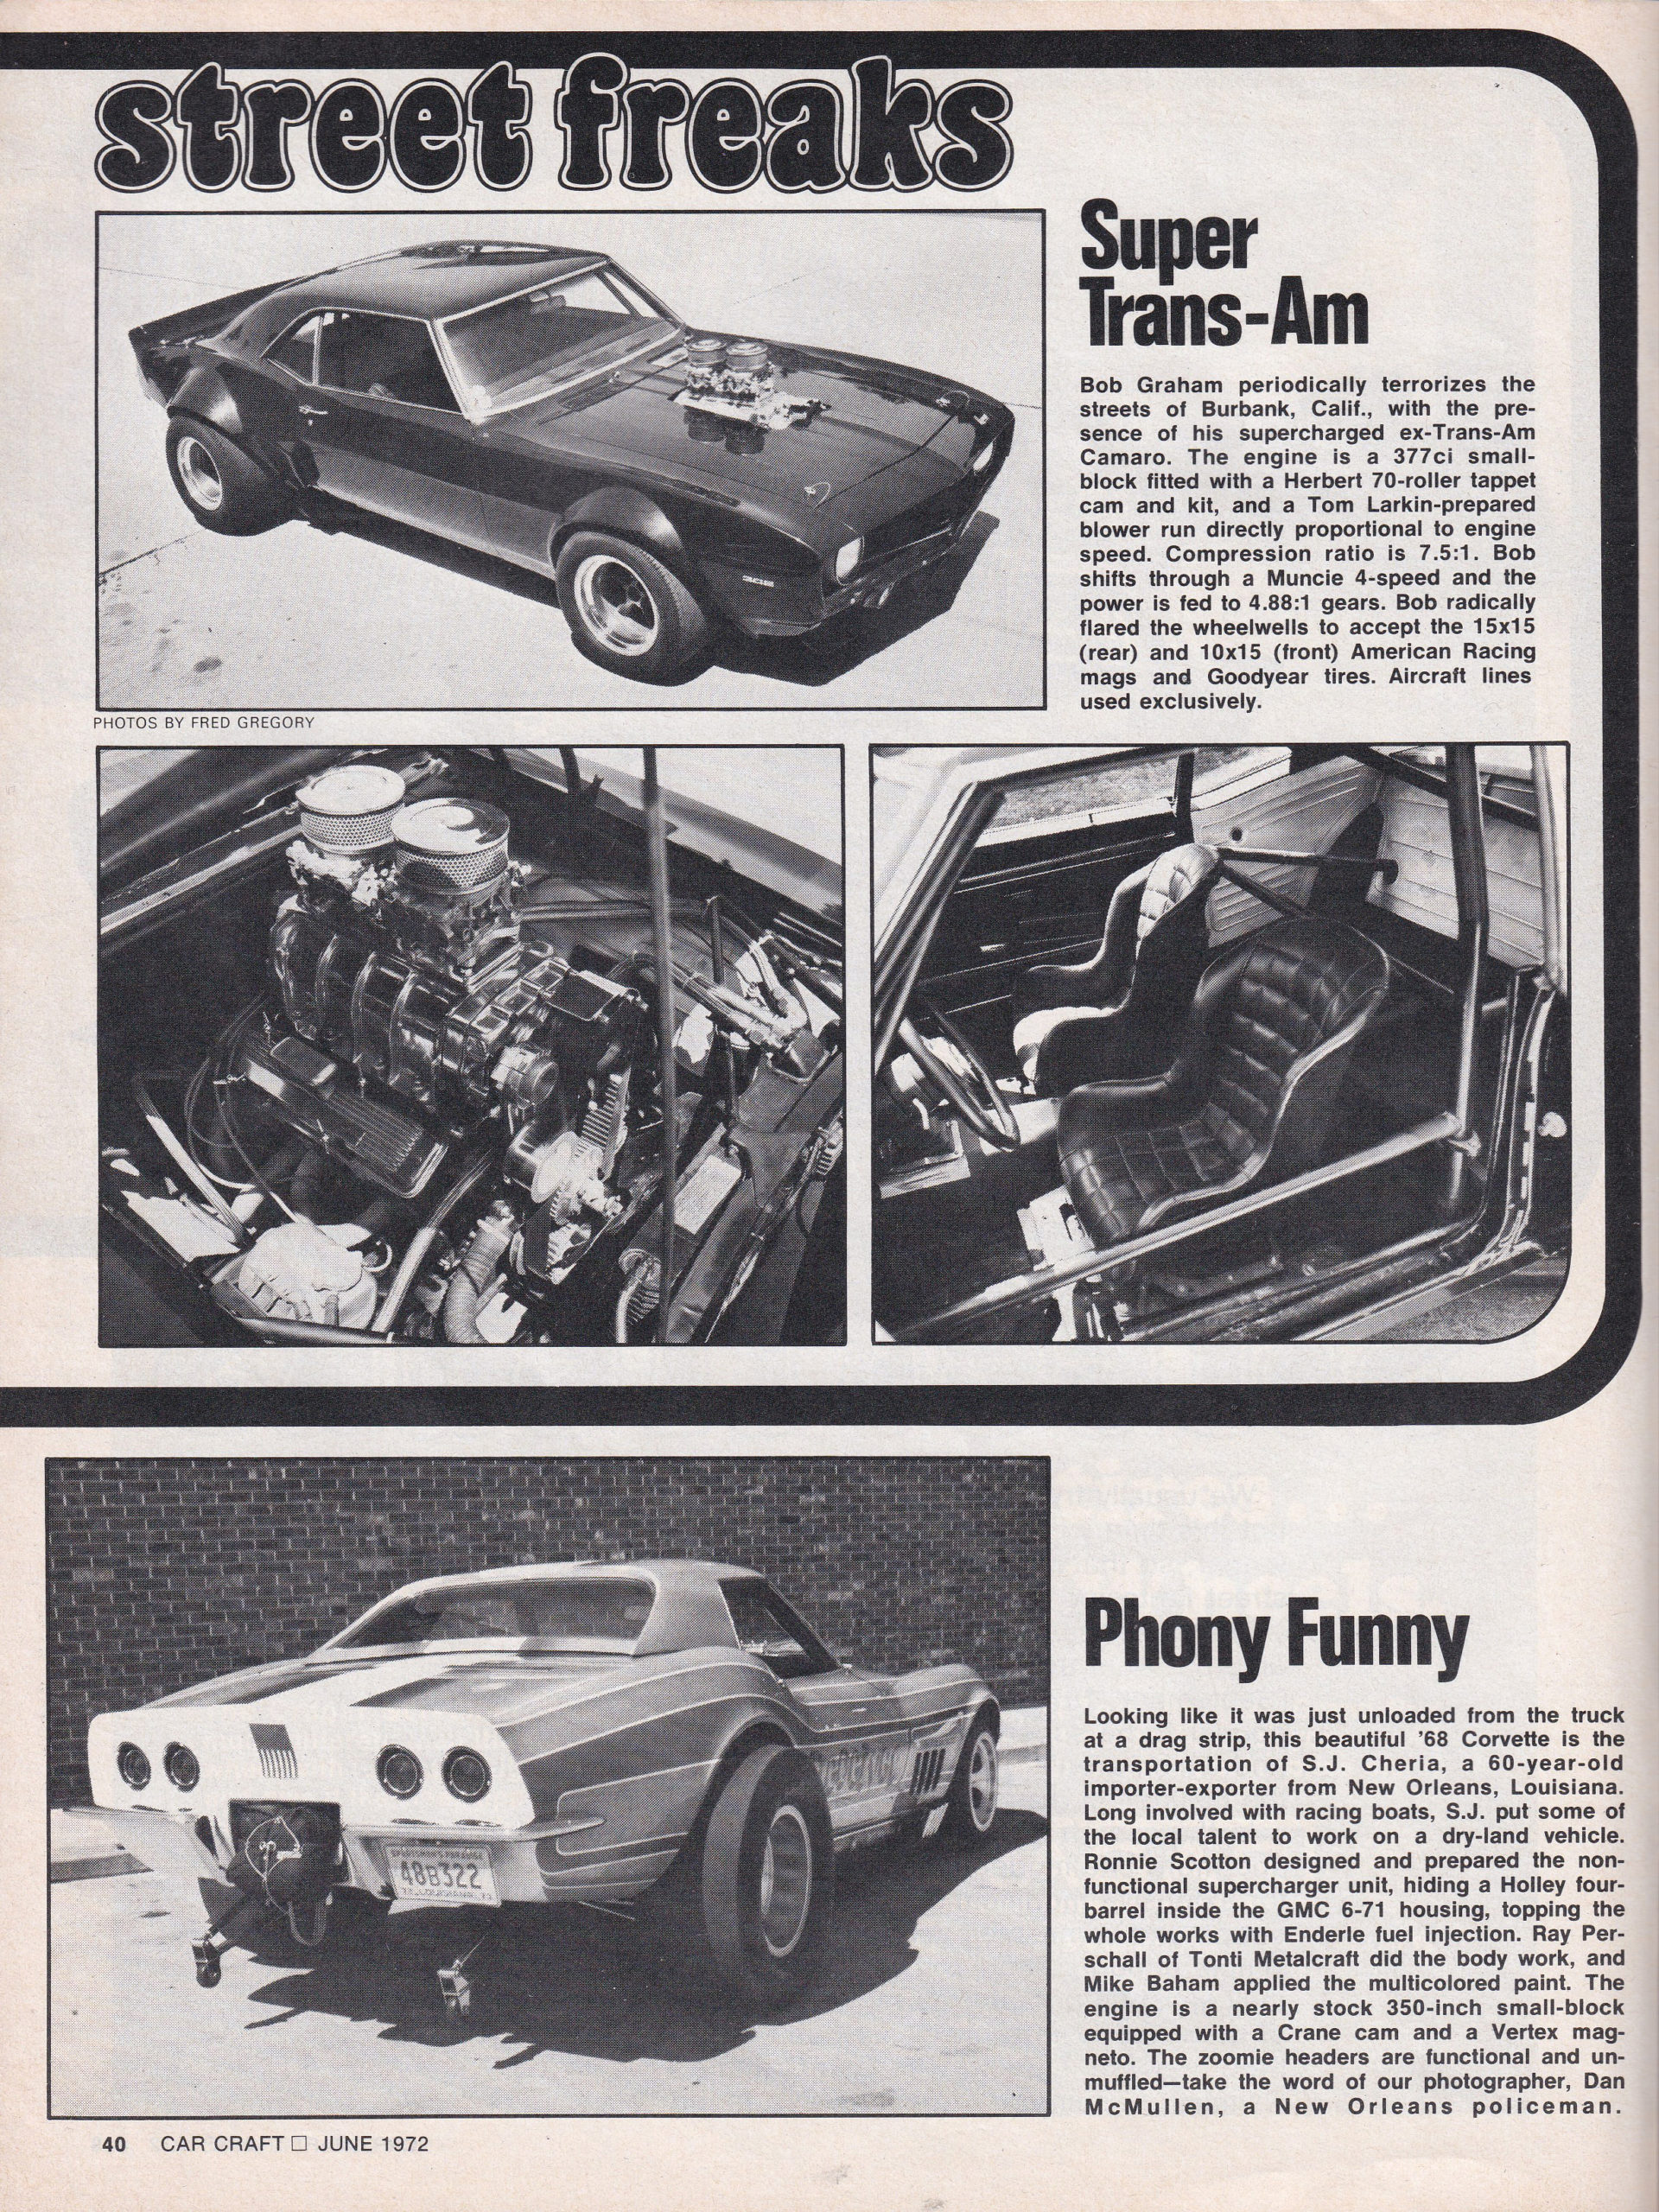 Street Freaks section from June 1972 issue of Car Craft, page 2.